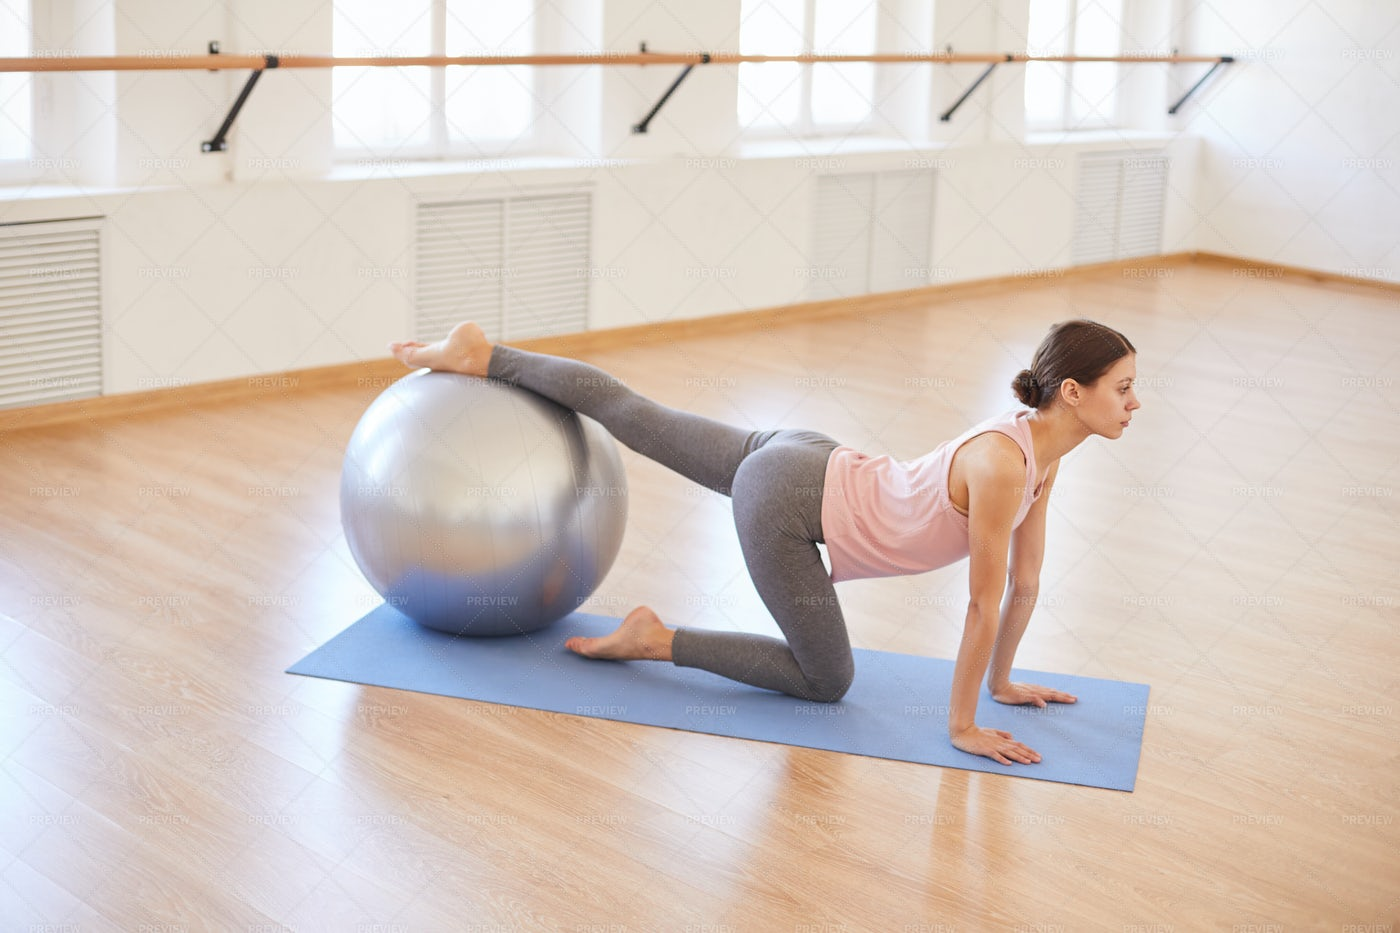 Slim Girl Practicing With Exercise...: Stock Photos